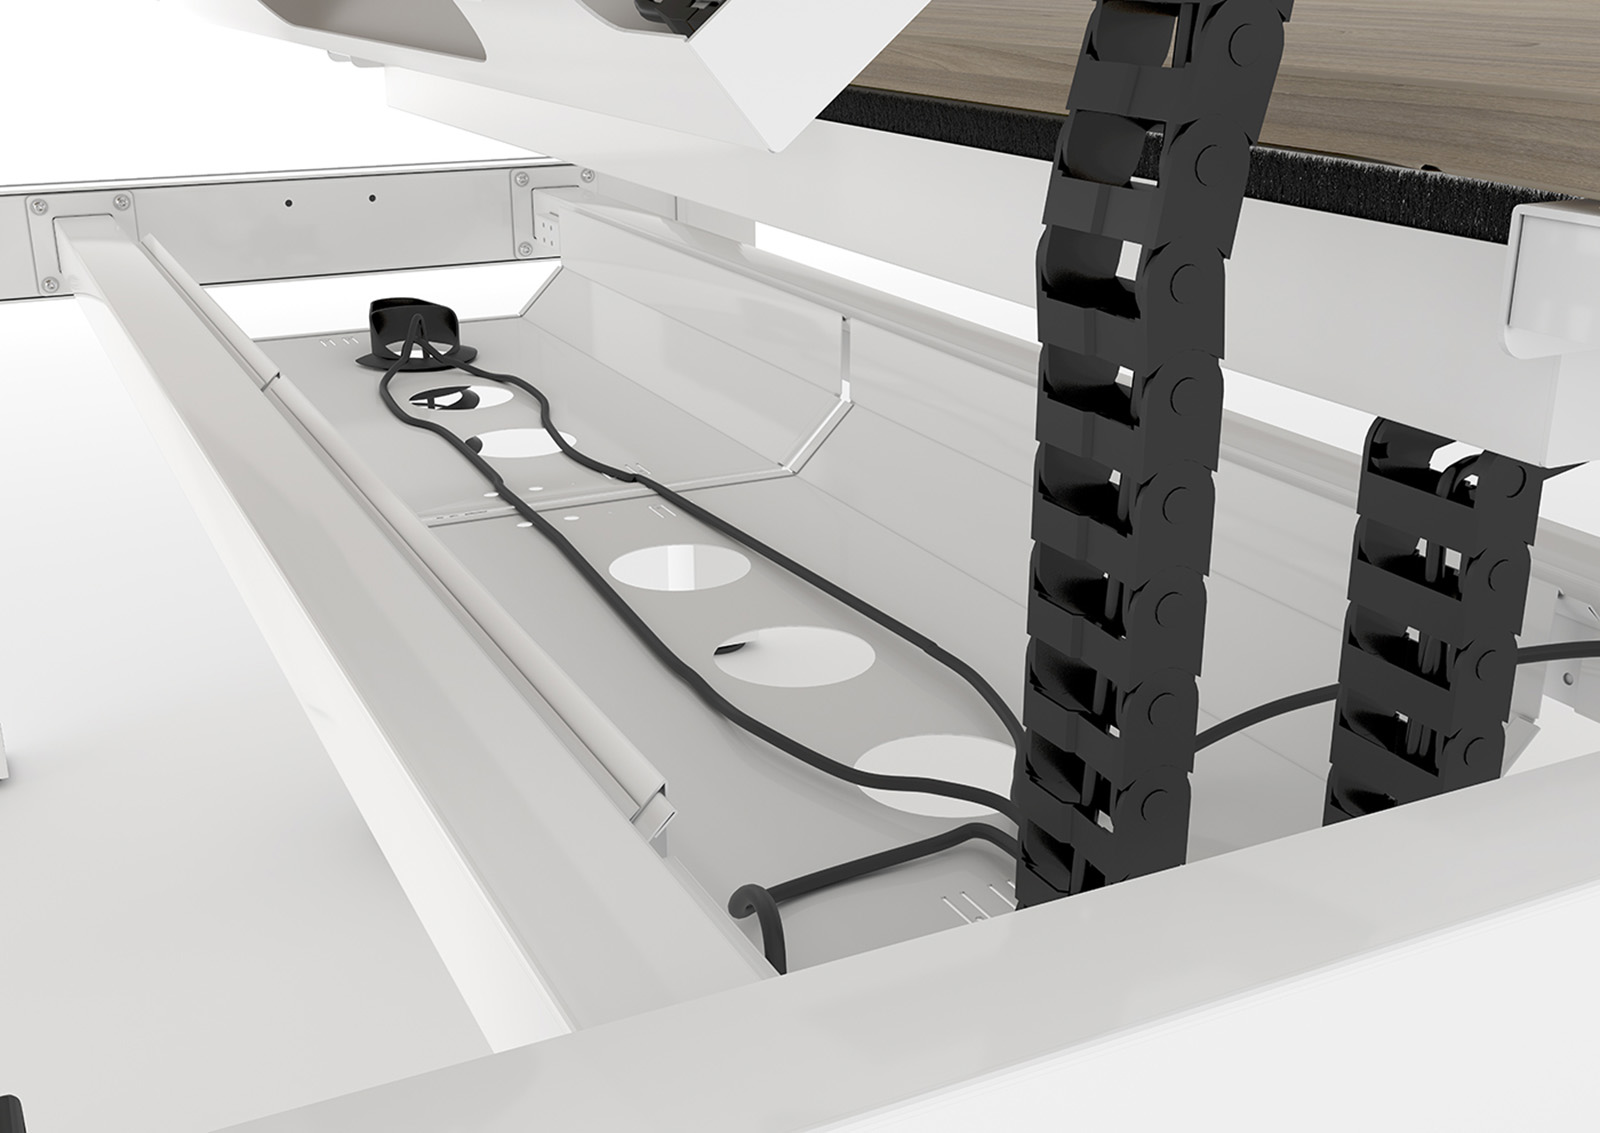 cable management, spine, cable tray, brush strips